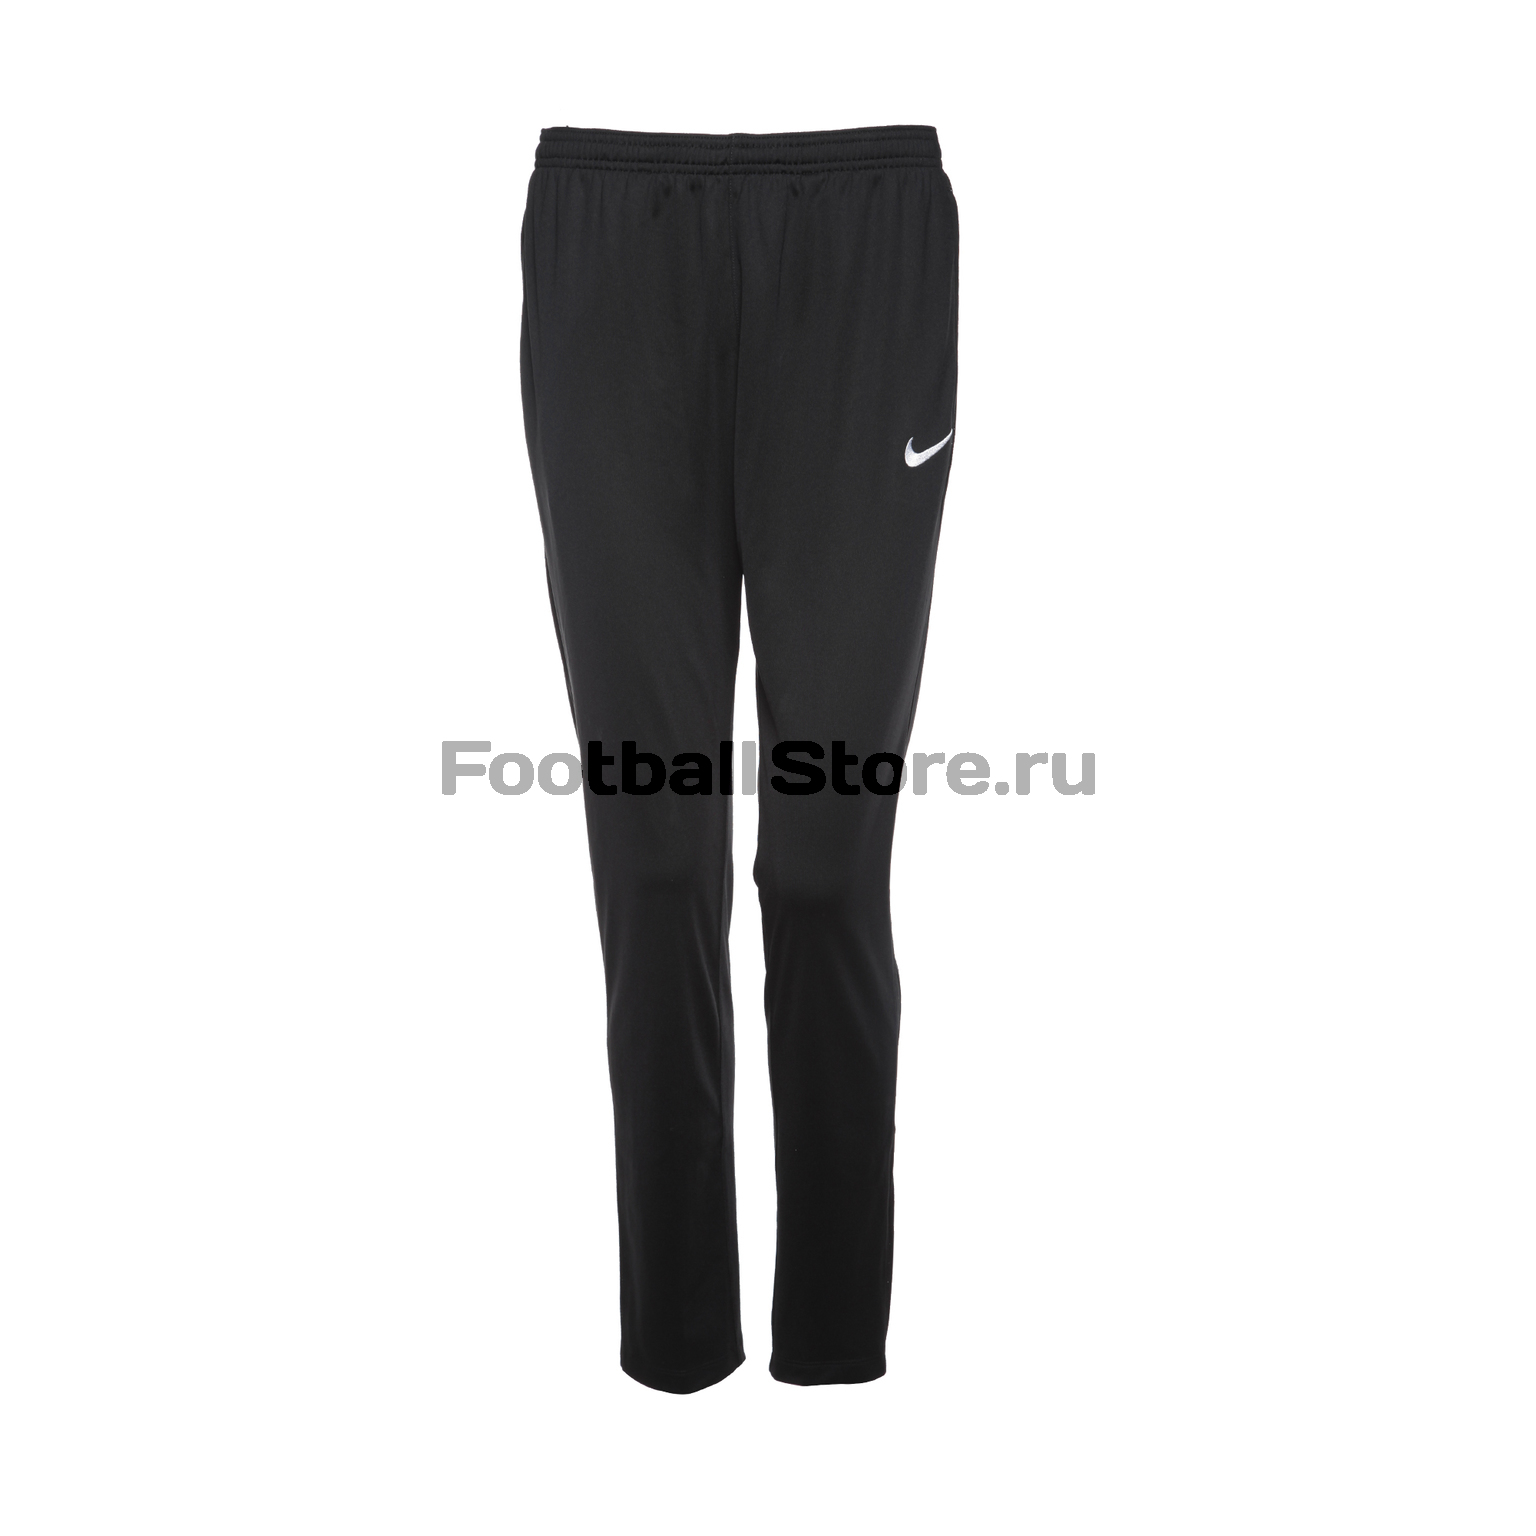 Брюки тренировочные женские Nike Dry Academy18 Pant 893721-010 module ssop30 tssop30 ots 30 0 65 01 enplas ic test burn in socket programming adapter 0 65mm pitch 6 1mm width